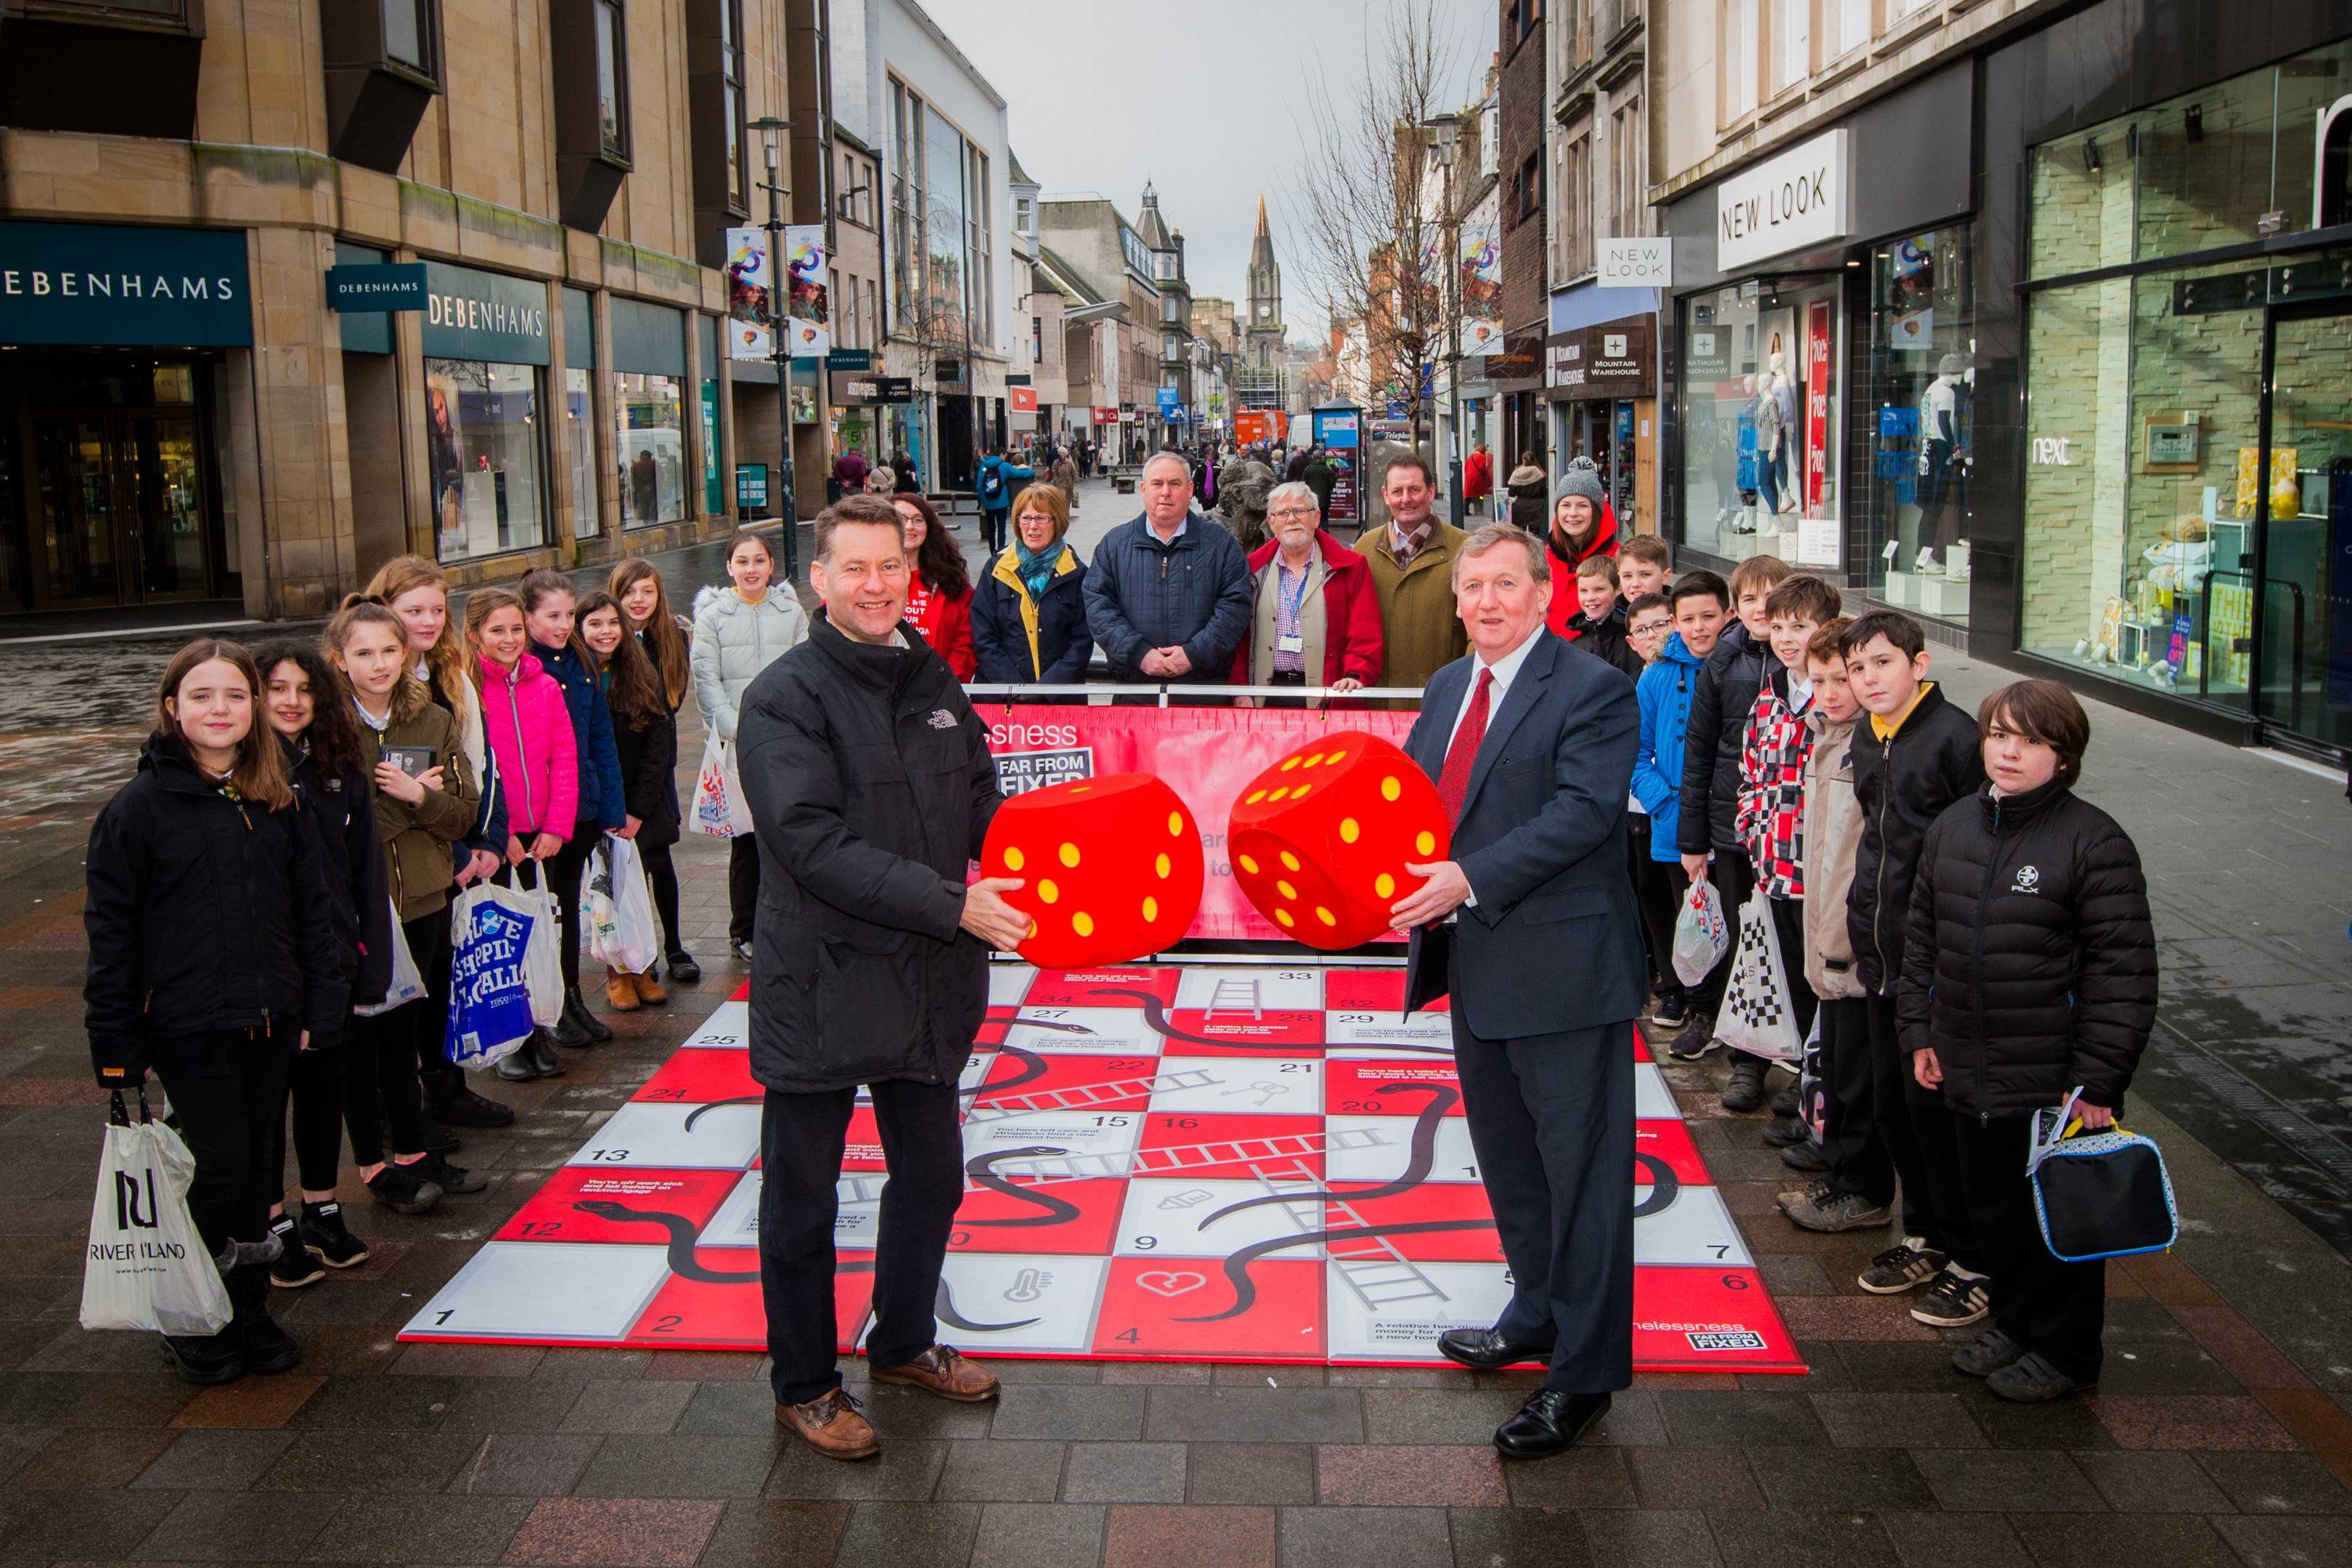 Policitions Murdo Fraser MSP (left) and Alex Rowley MSP (right) watched by school children from Moncreiffe Primary School, local councillors and member of the Campaigns team for Shelter Scotland